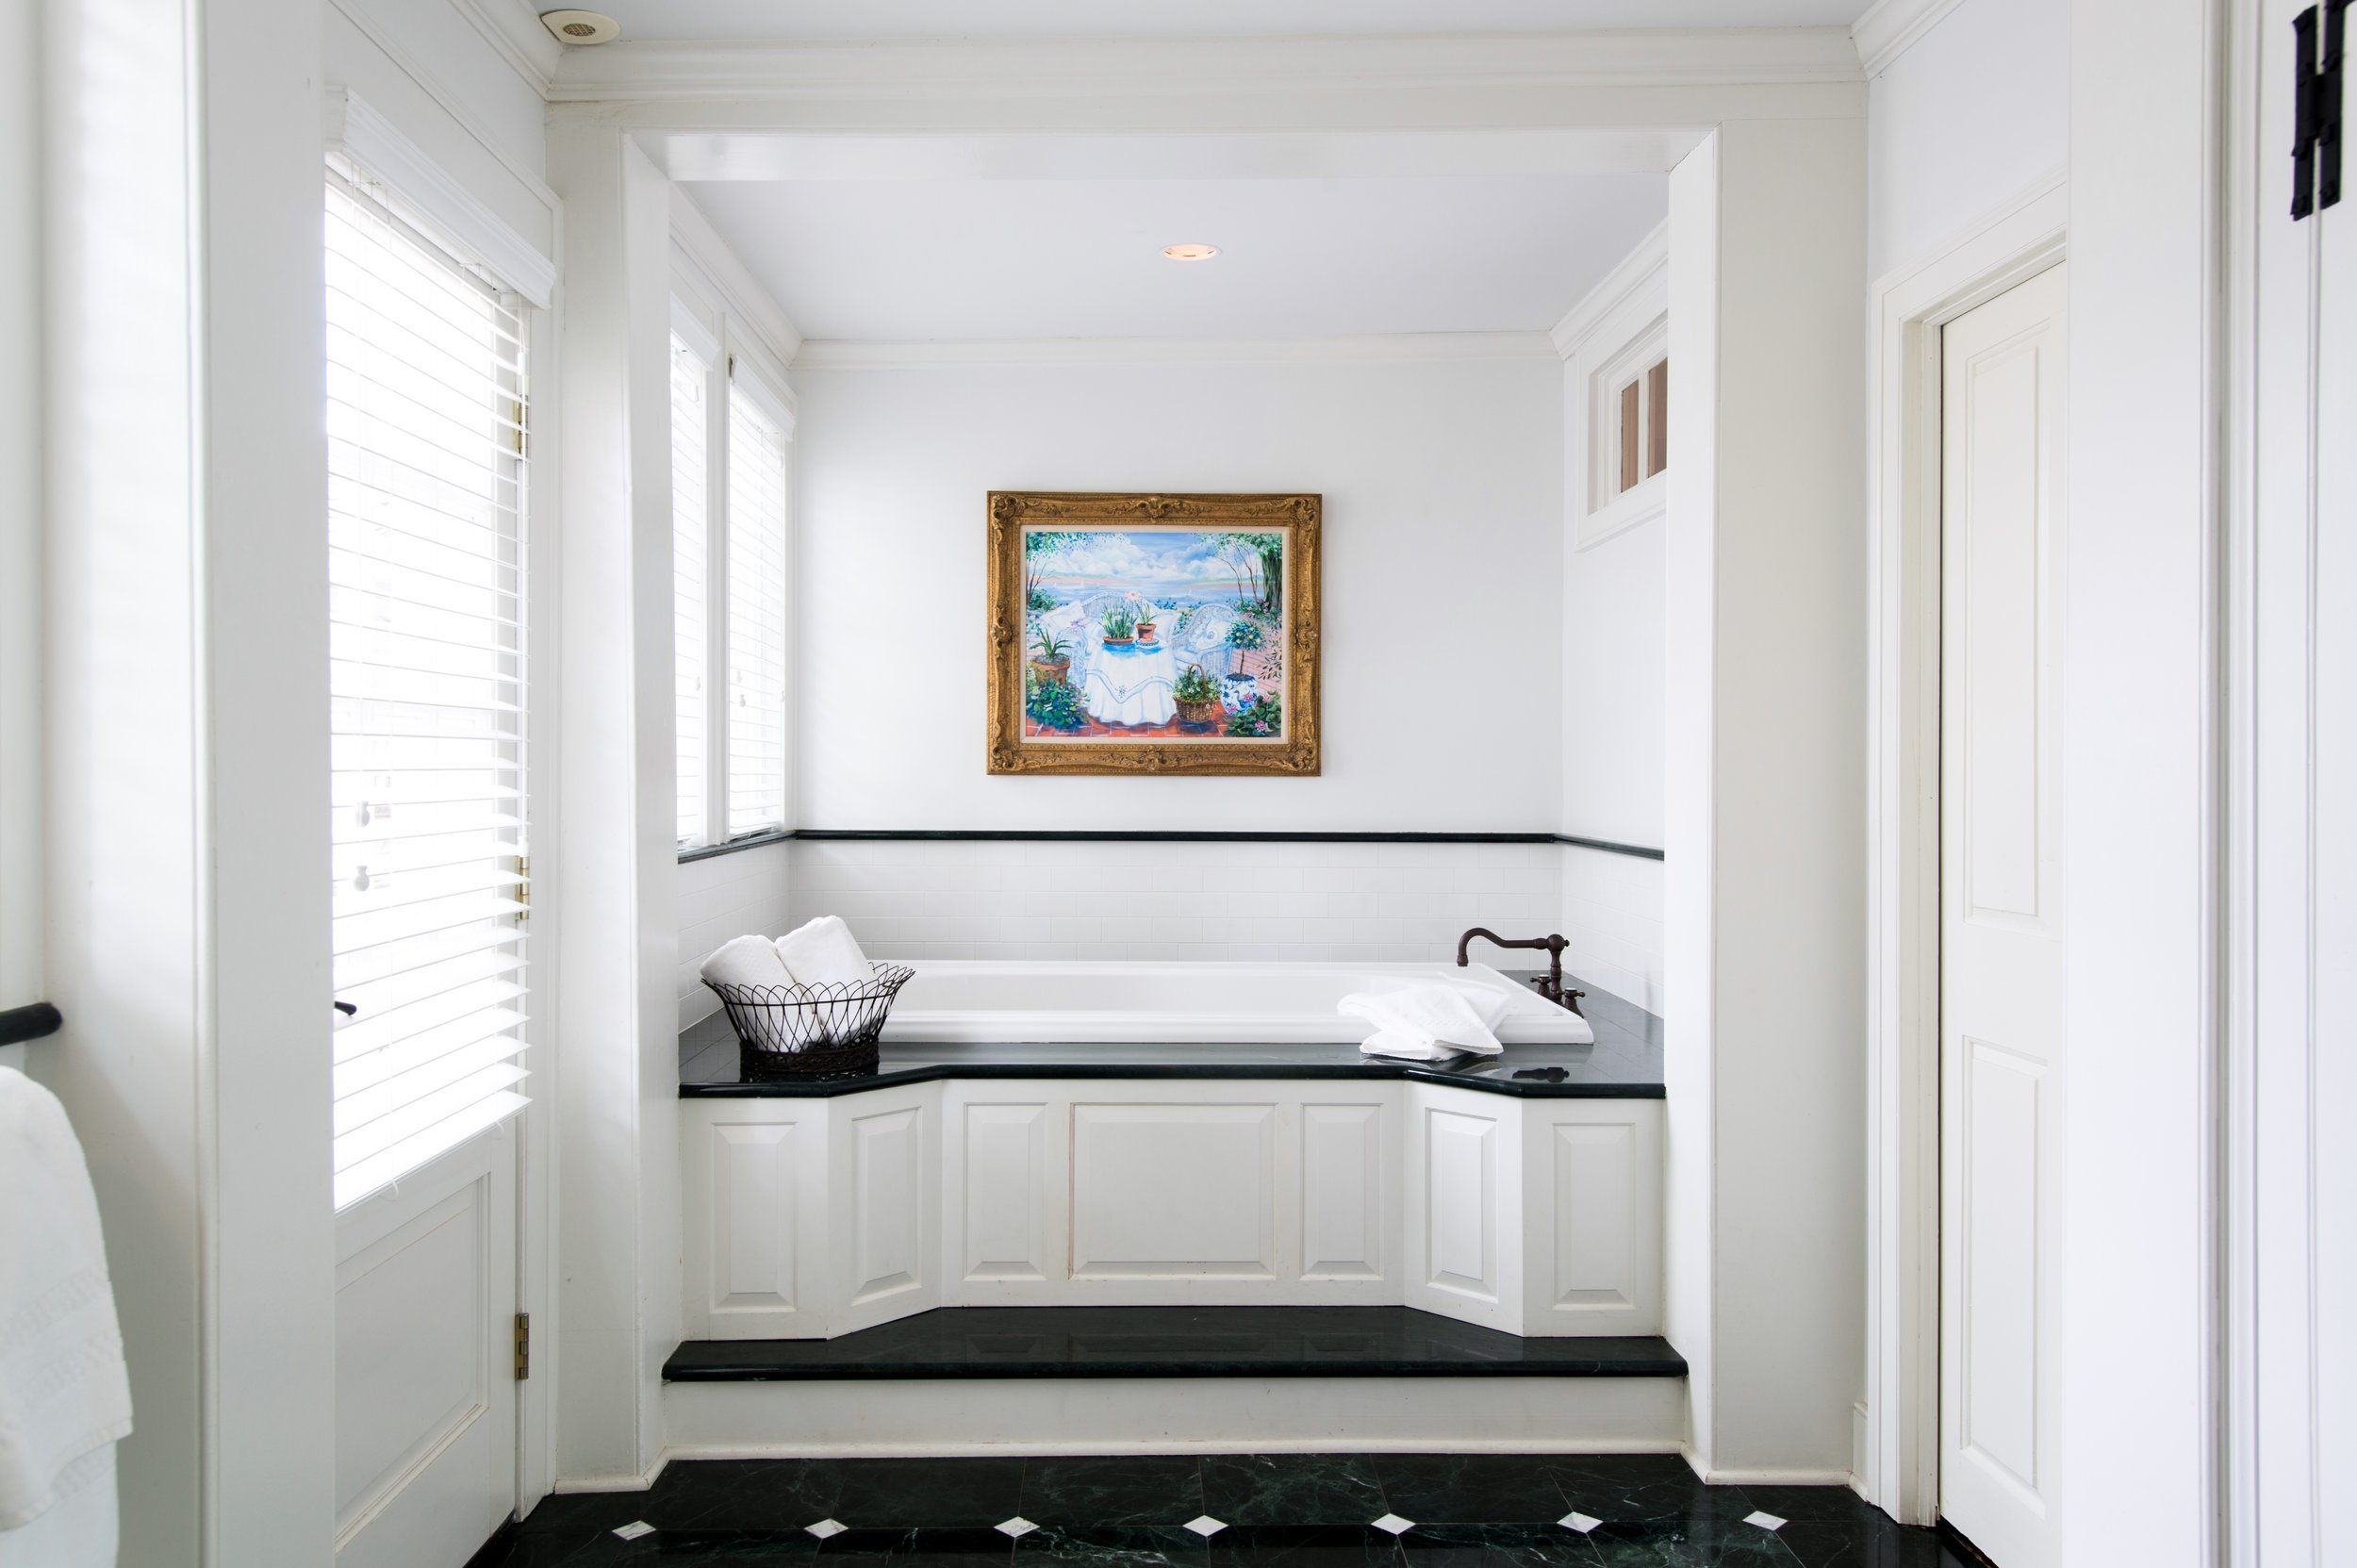 Copy of Hadley Suite Bathroom - Winvian Farm.jpg